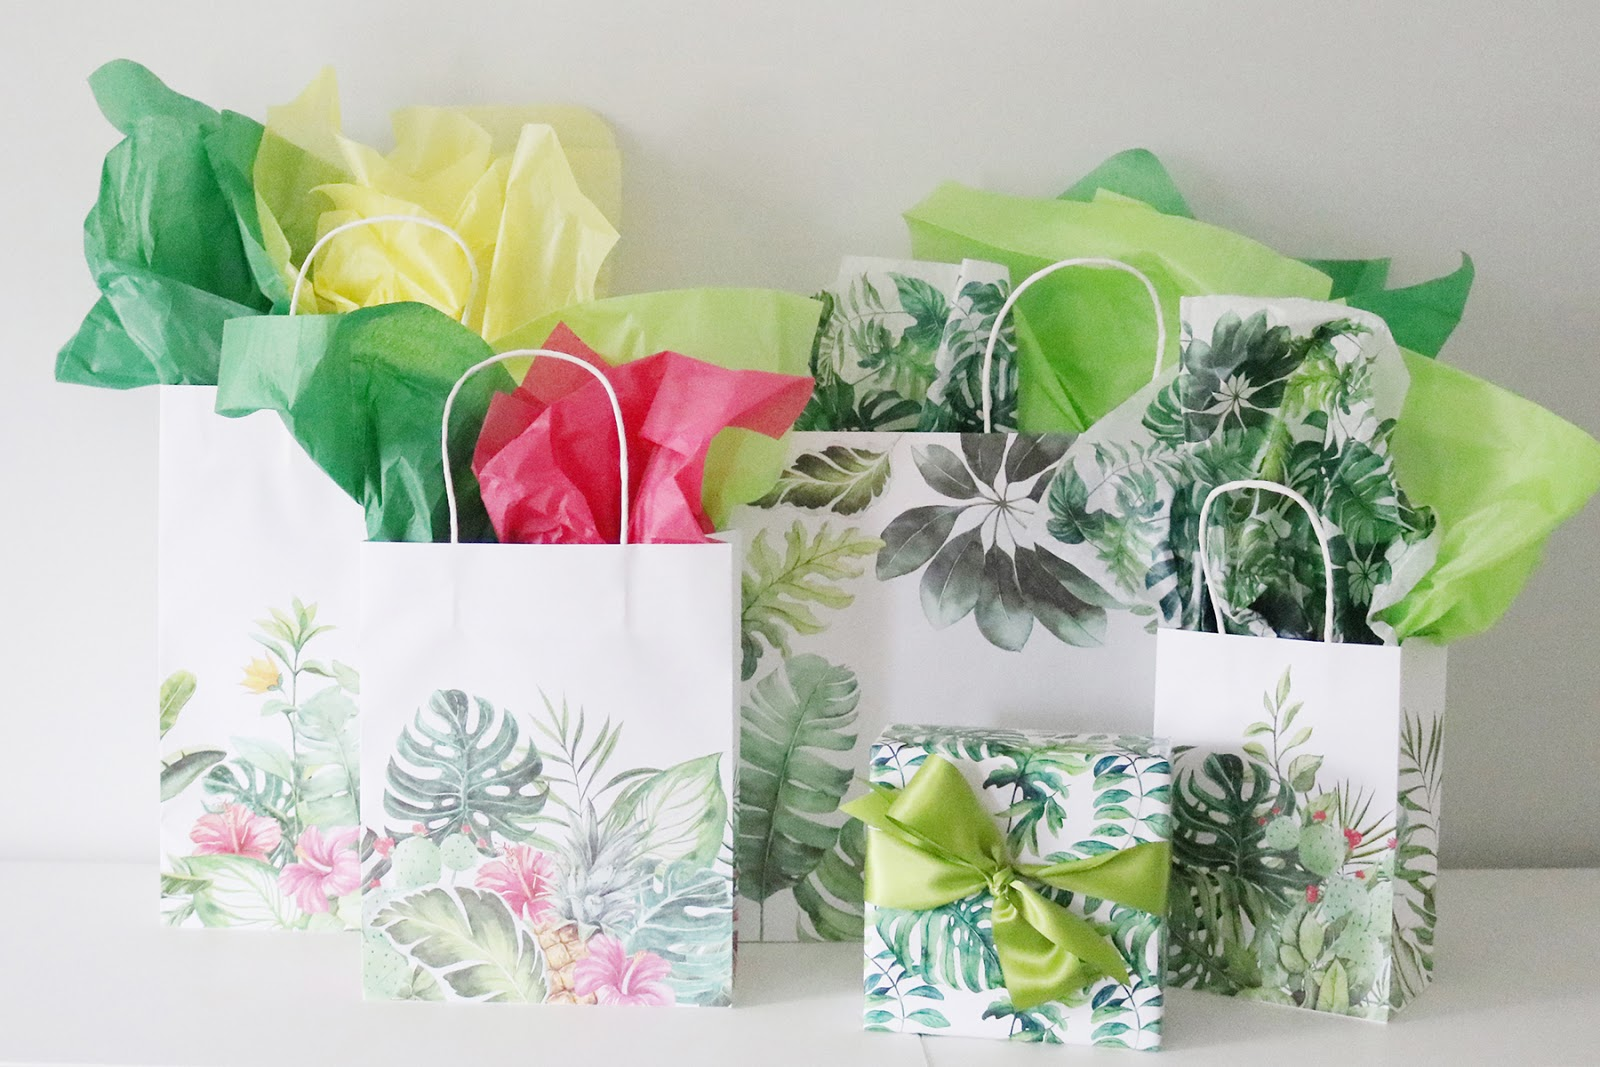 aloha gift wrapping collection from Creative Bag